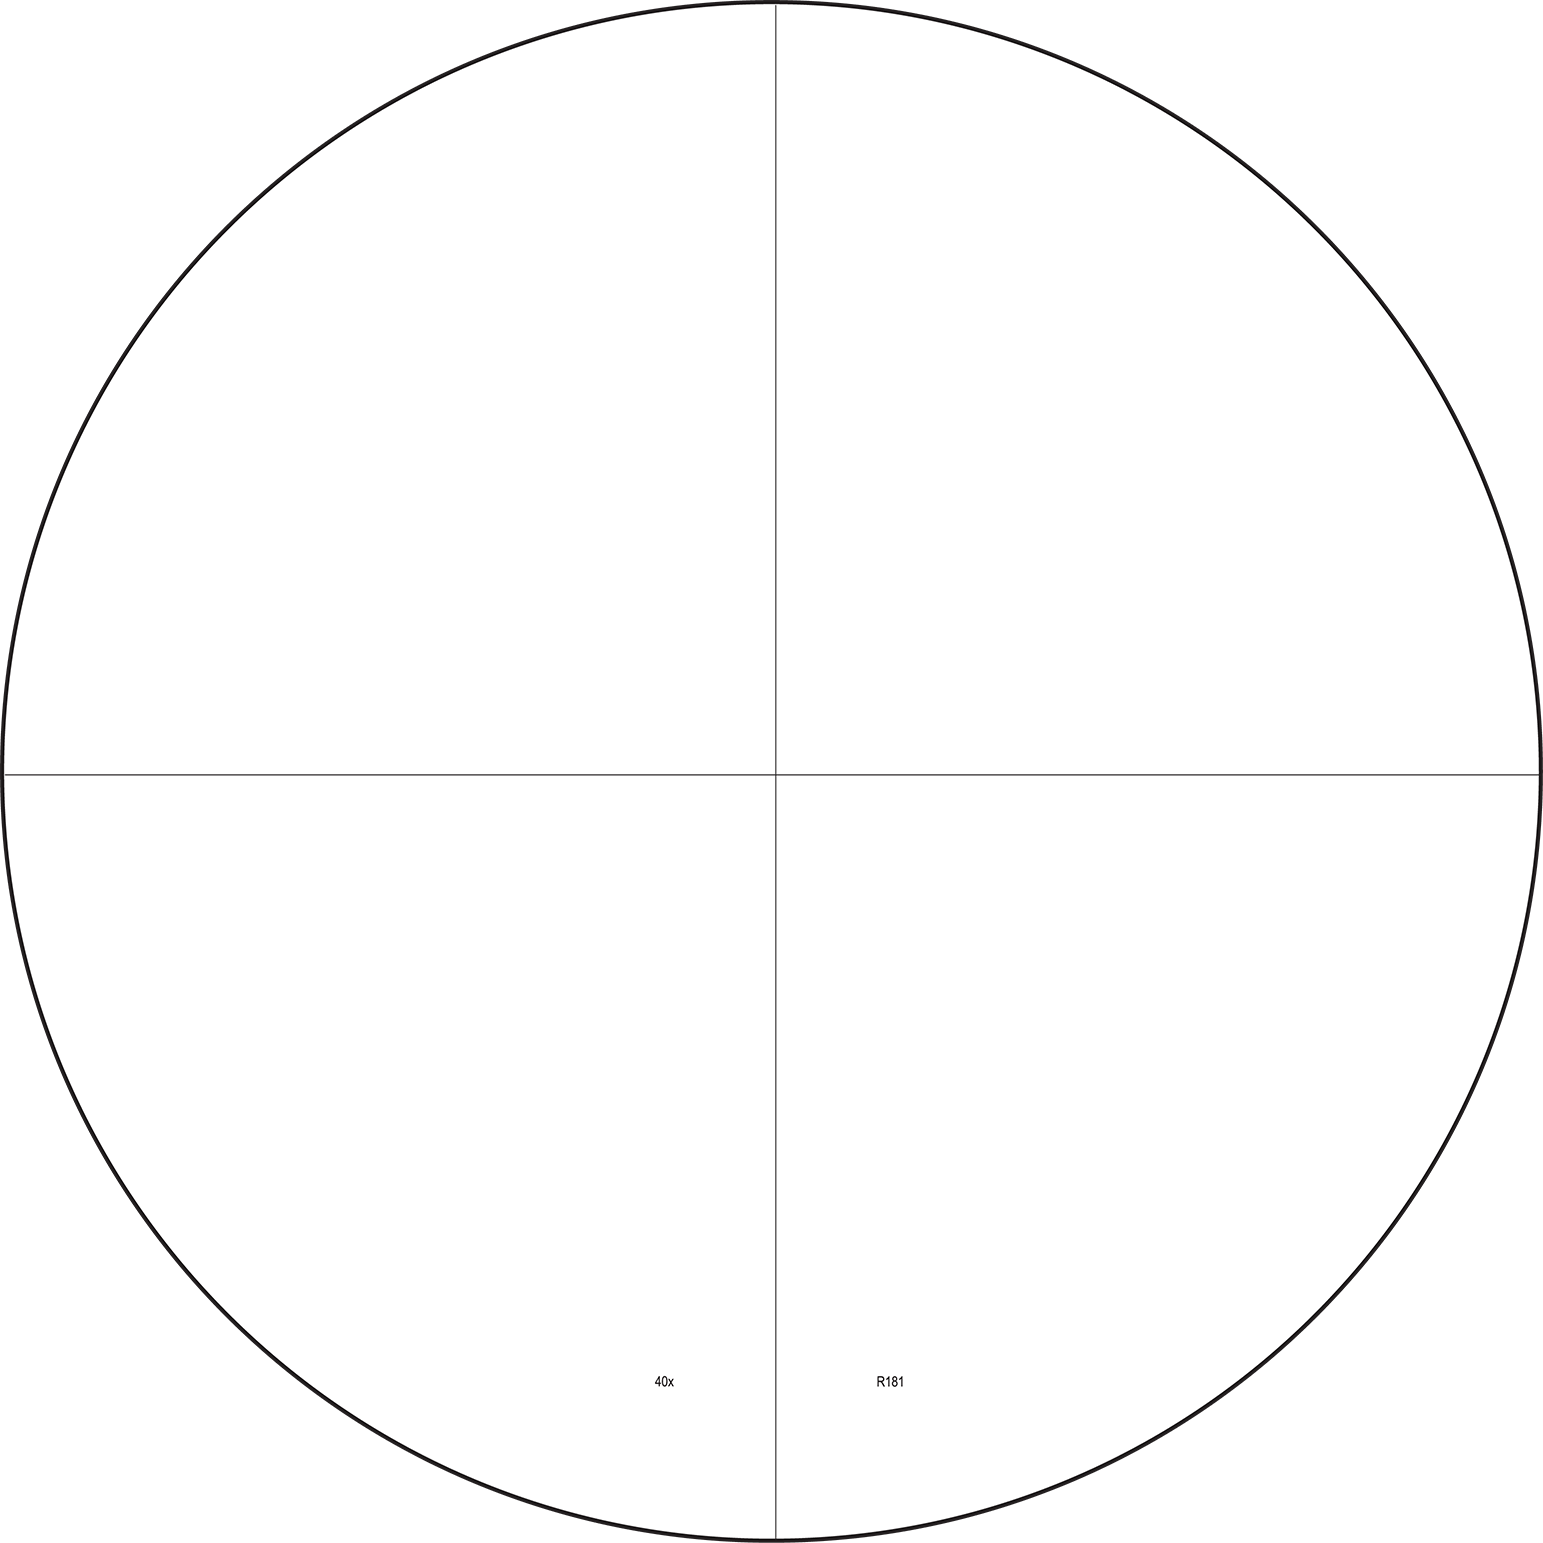 Reticle_Images - CTR-3